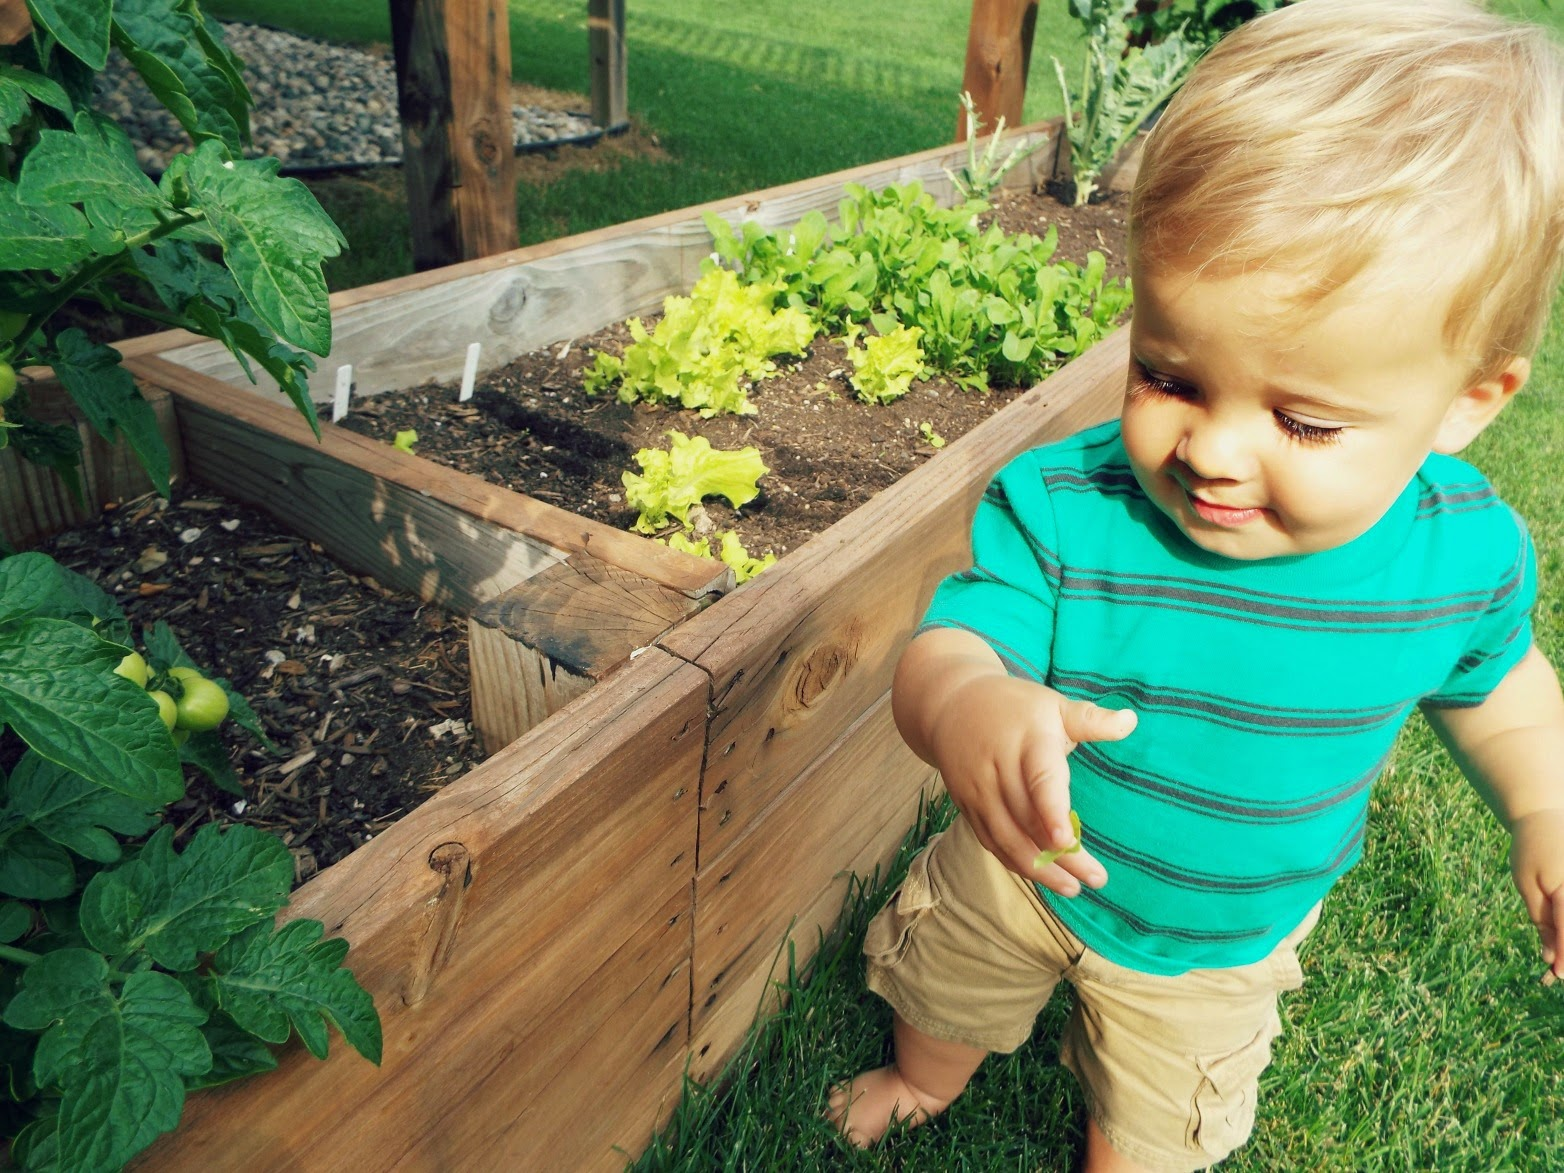 Gardening with Your Baby: 10 Things You Need to Know